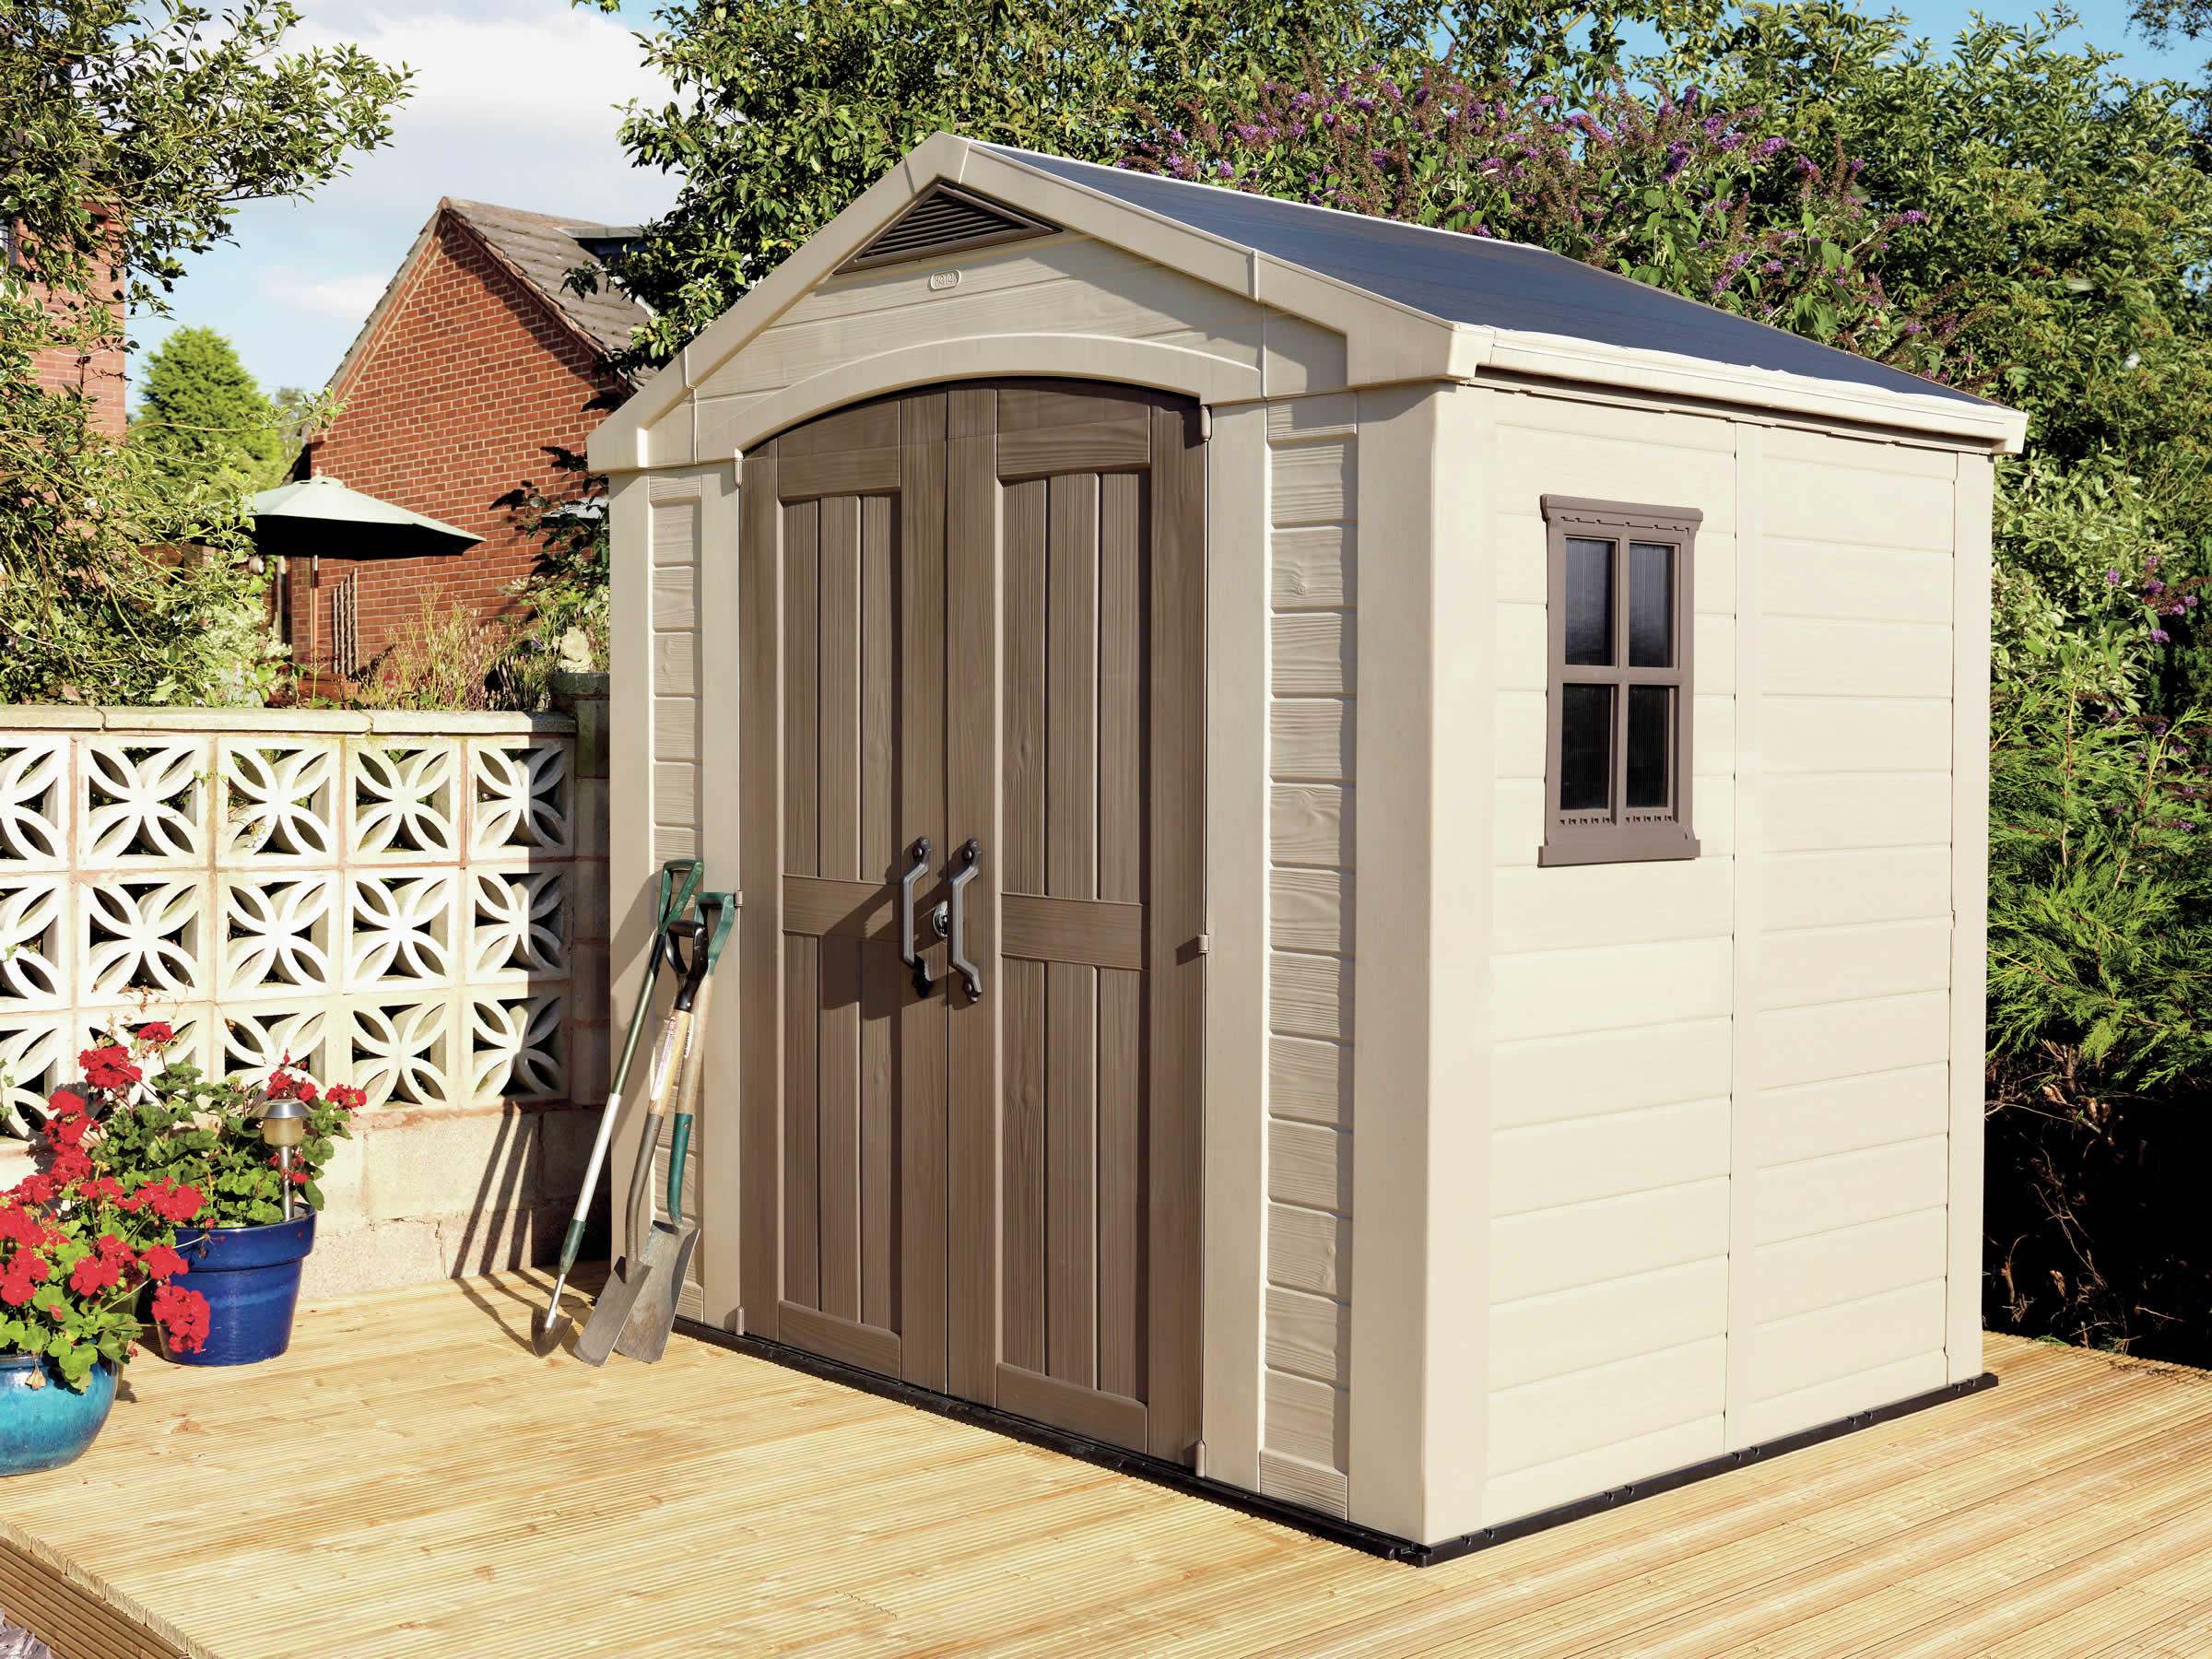 Epr retail news homebase shed for Garden shed homebase